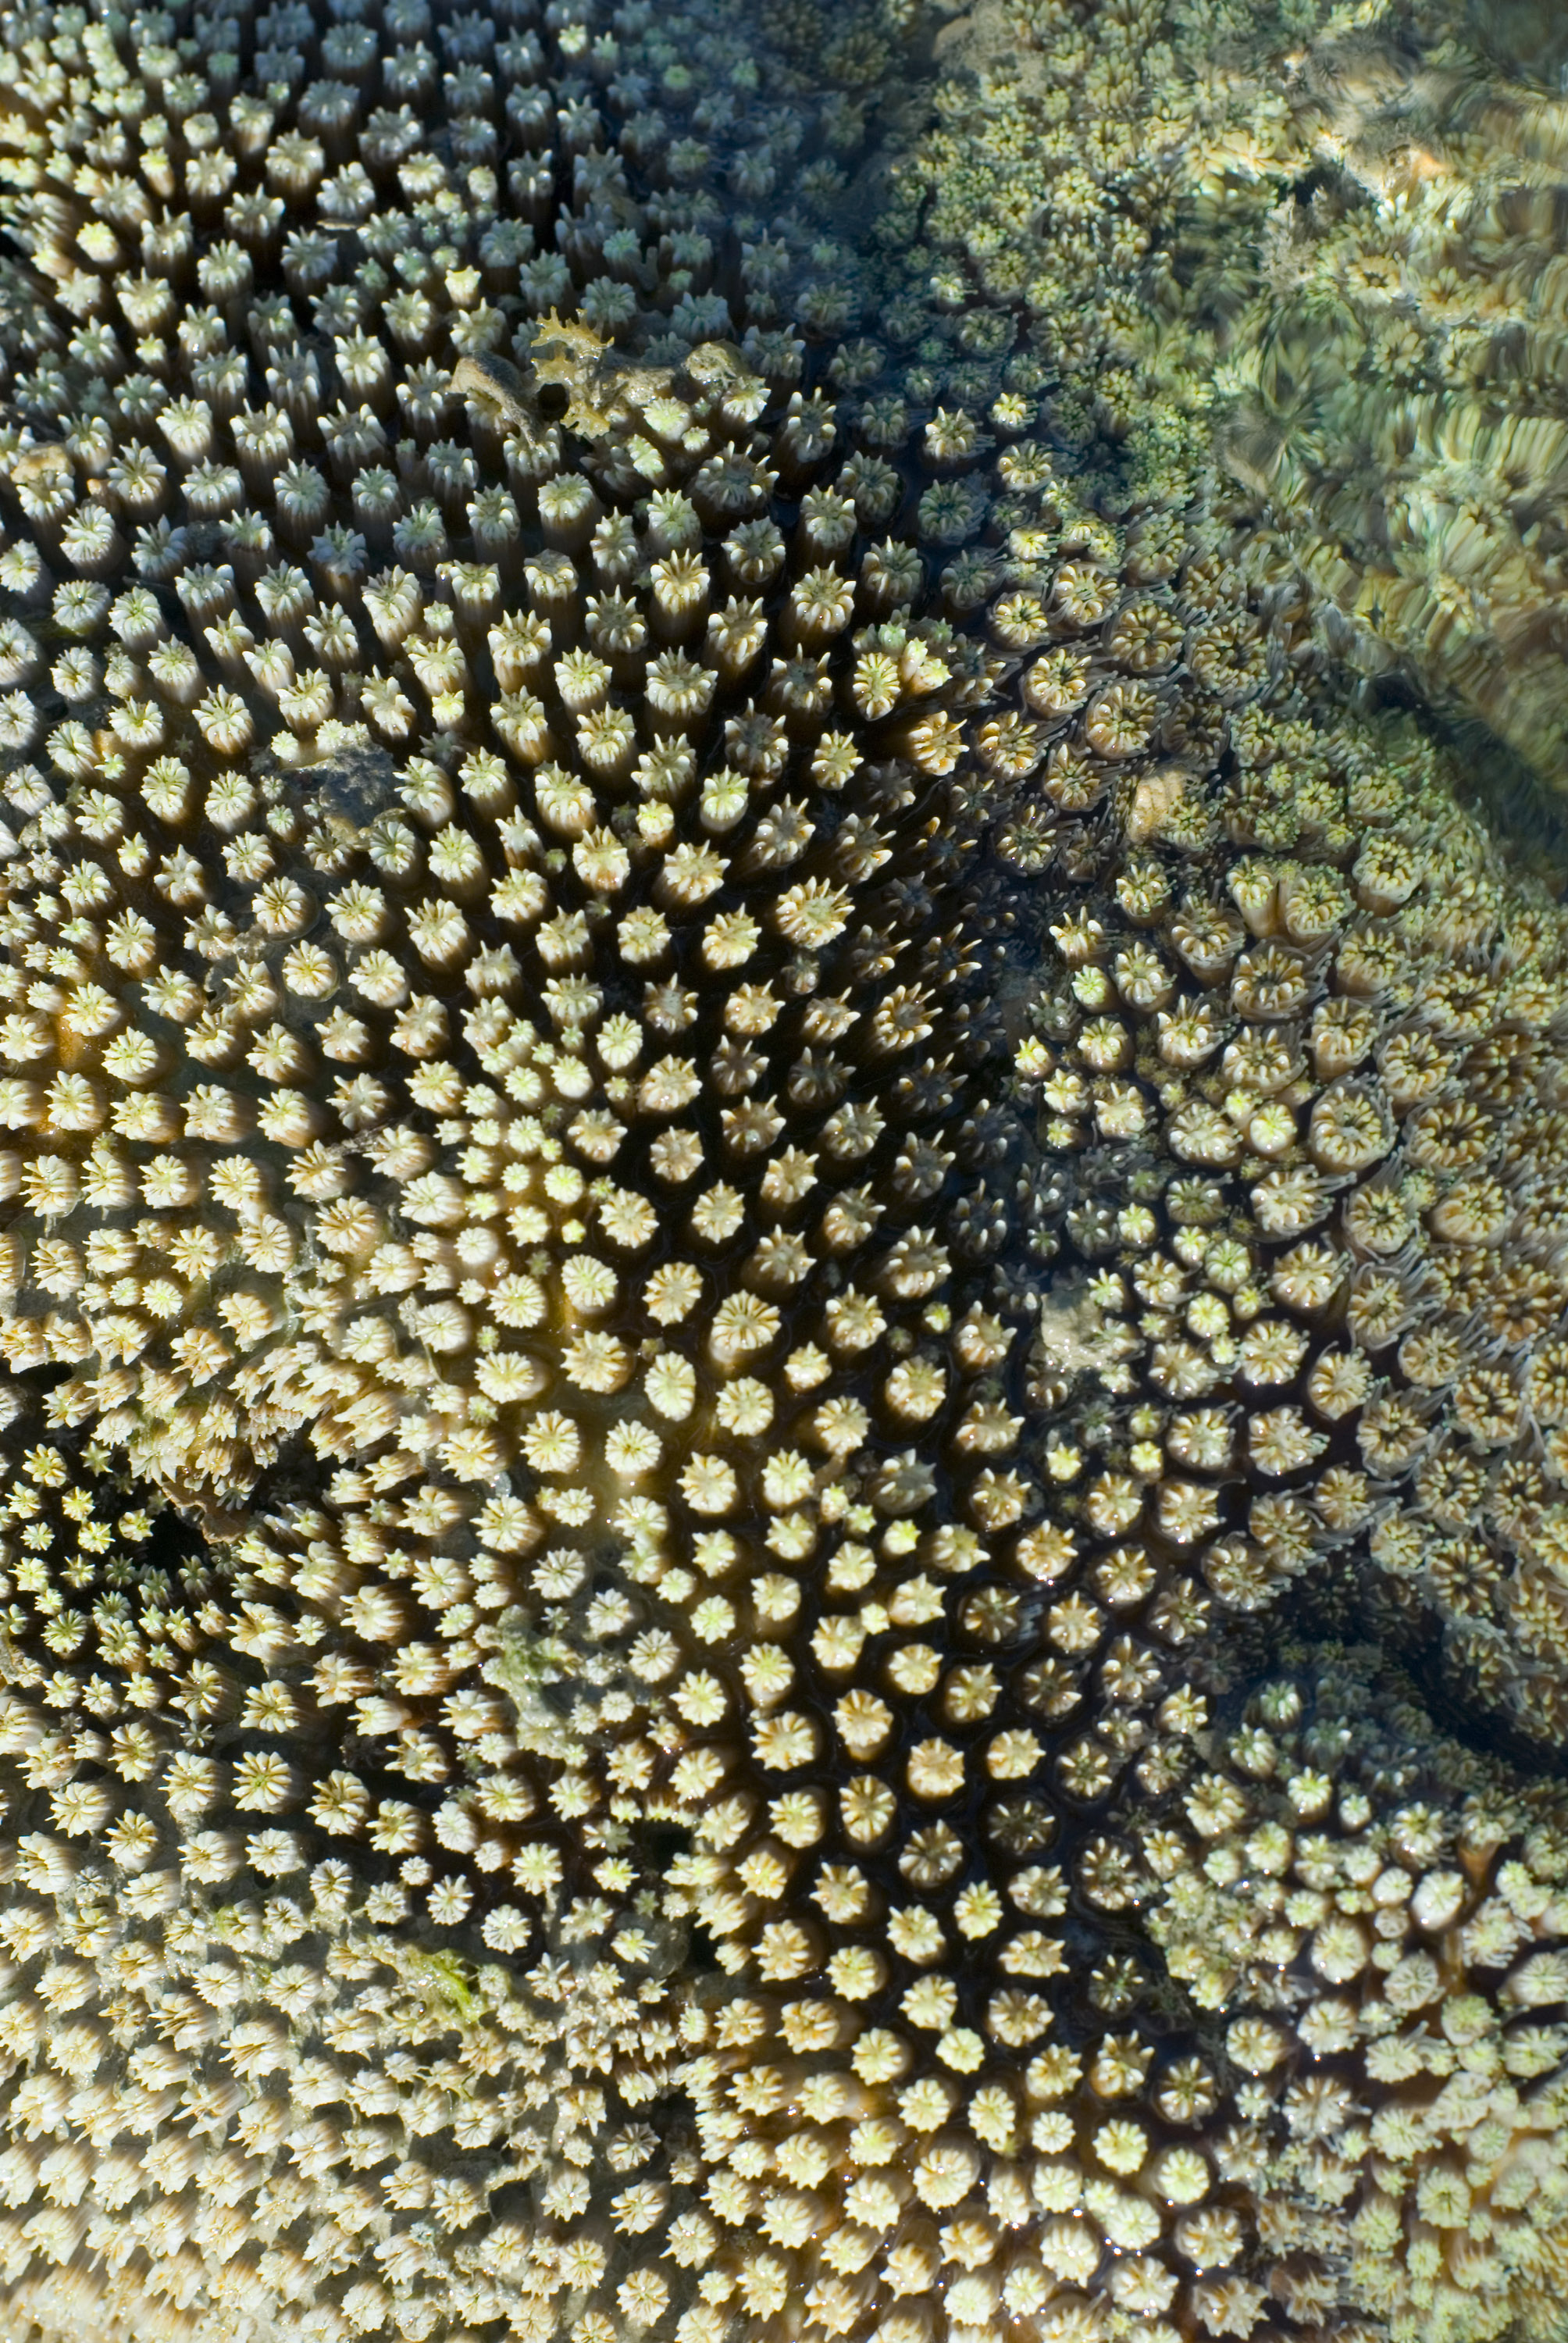 macro image of an array of hard coral polyps